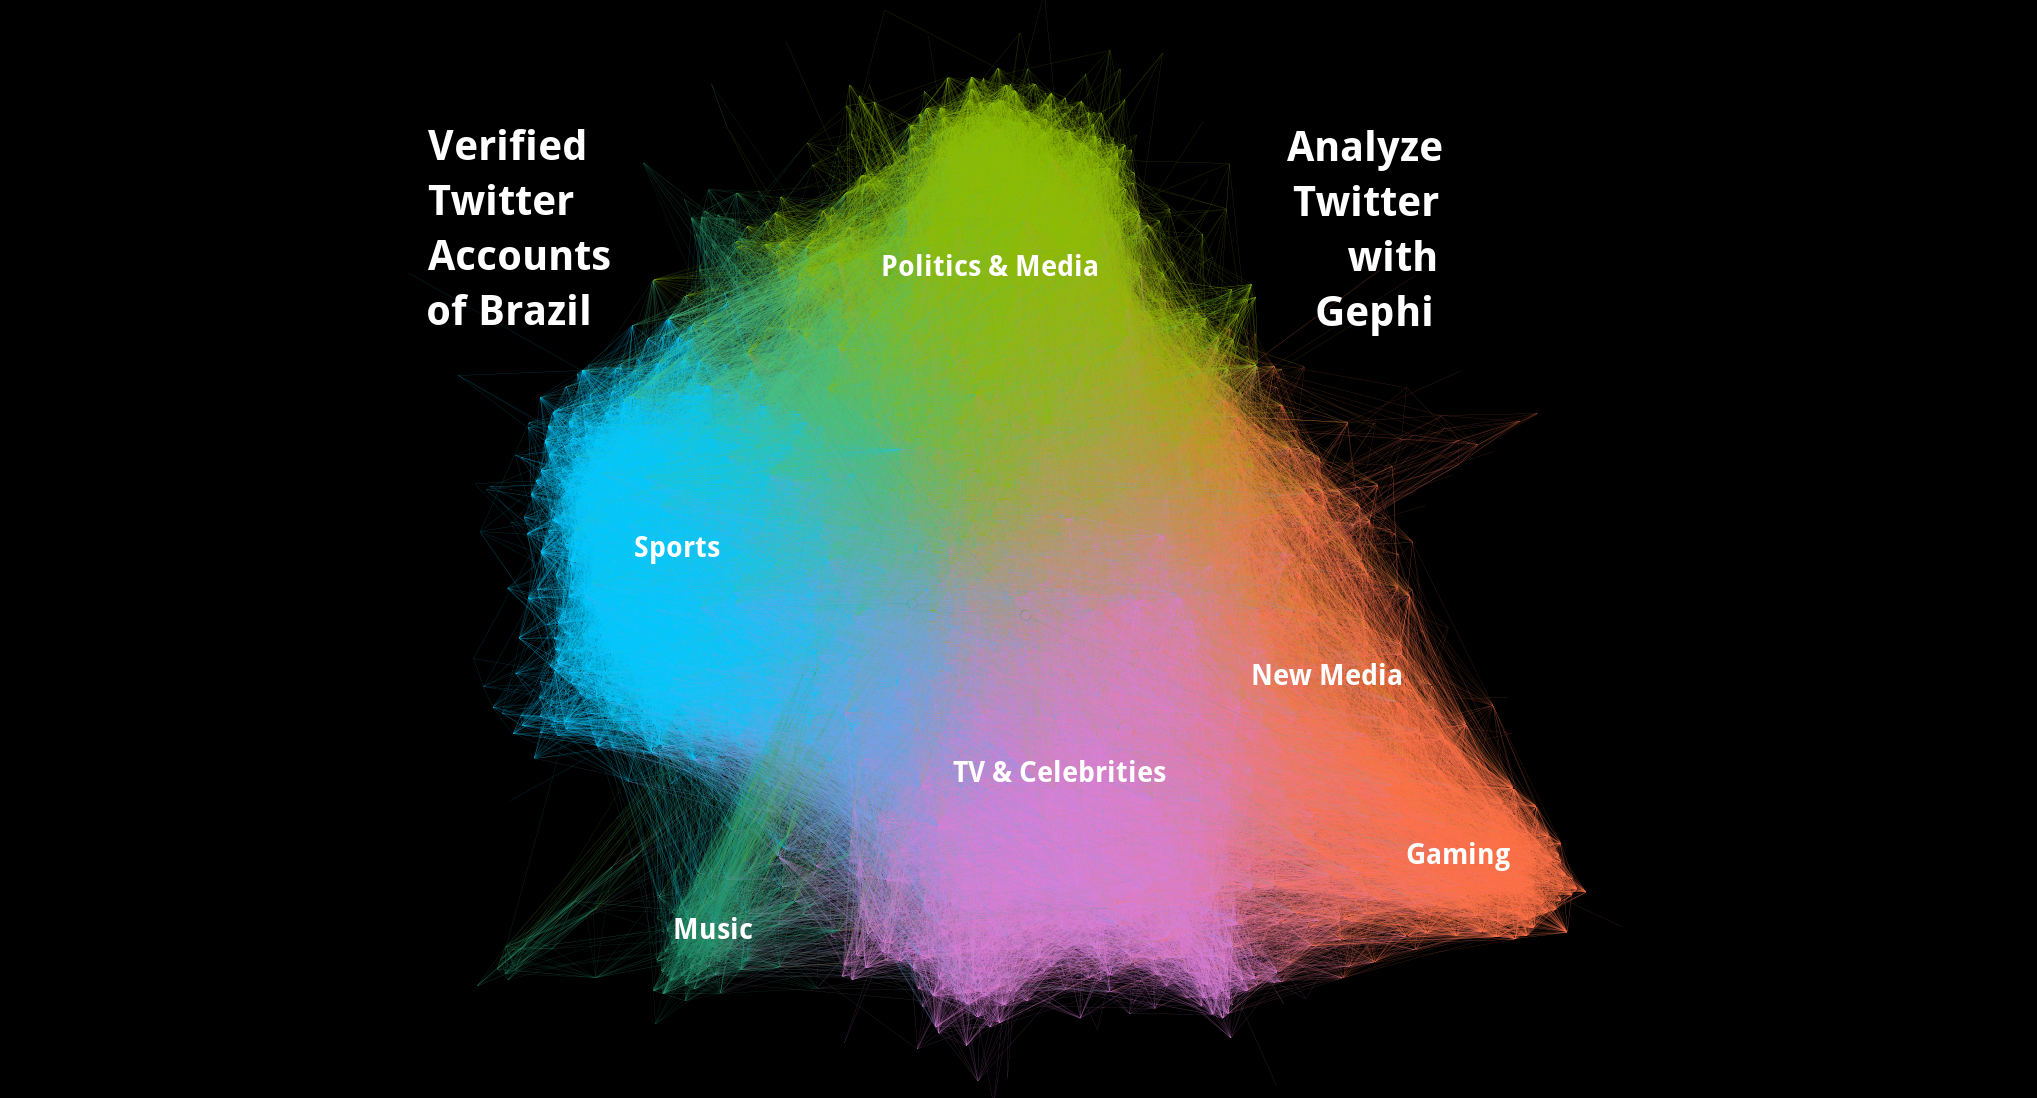 Guide: Analyzing Twitter Networks with Gephi 0 9 1 - Luca